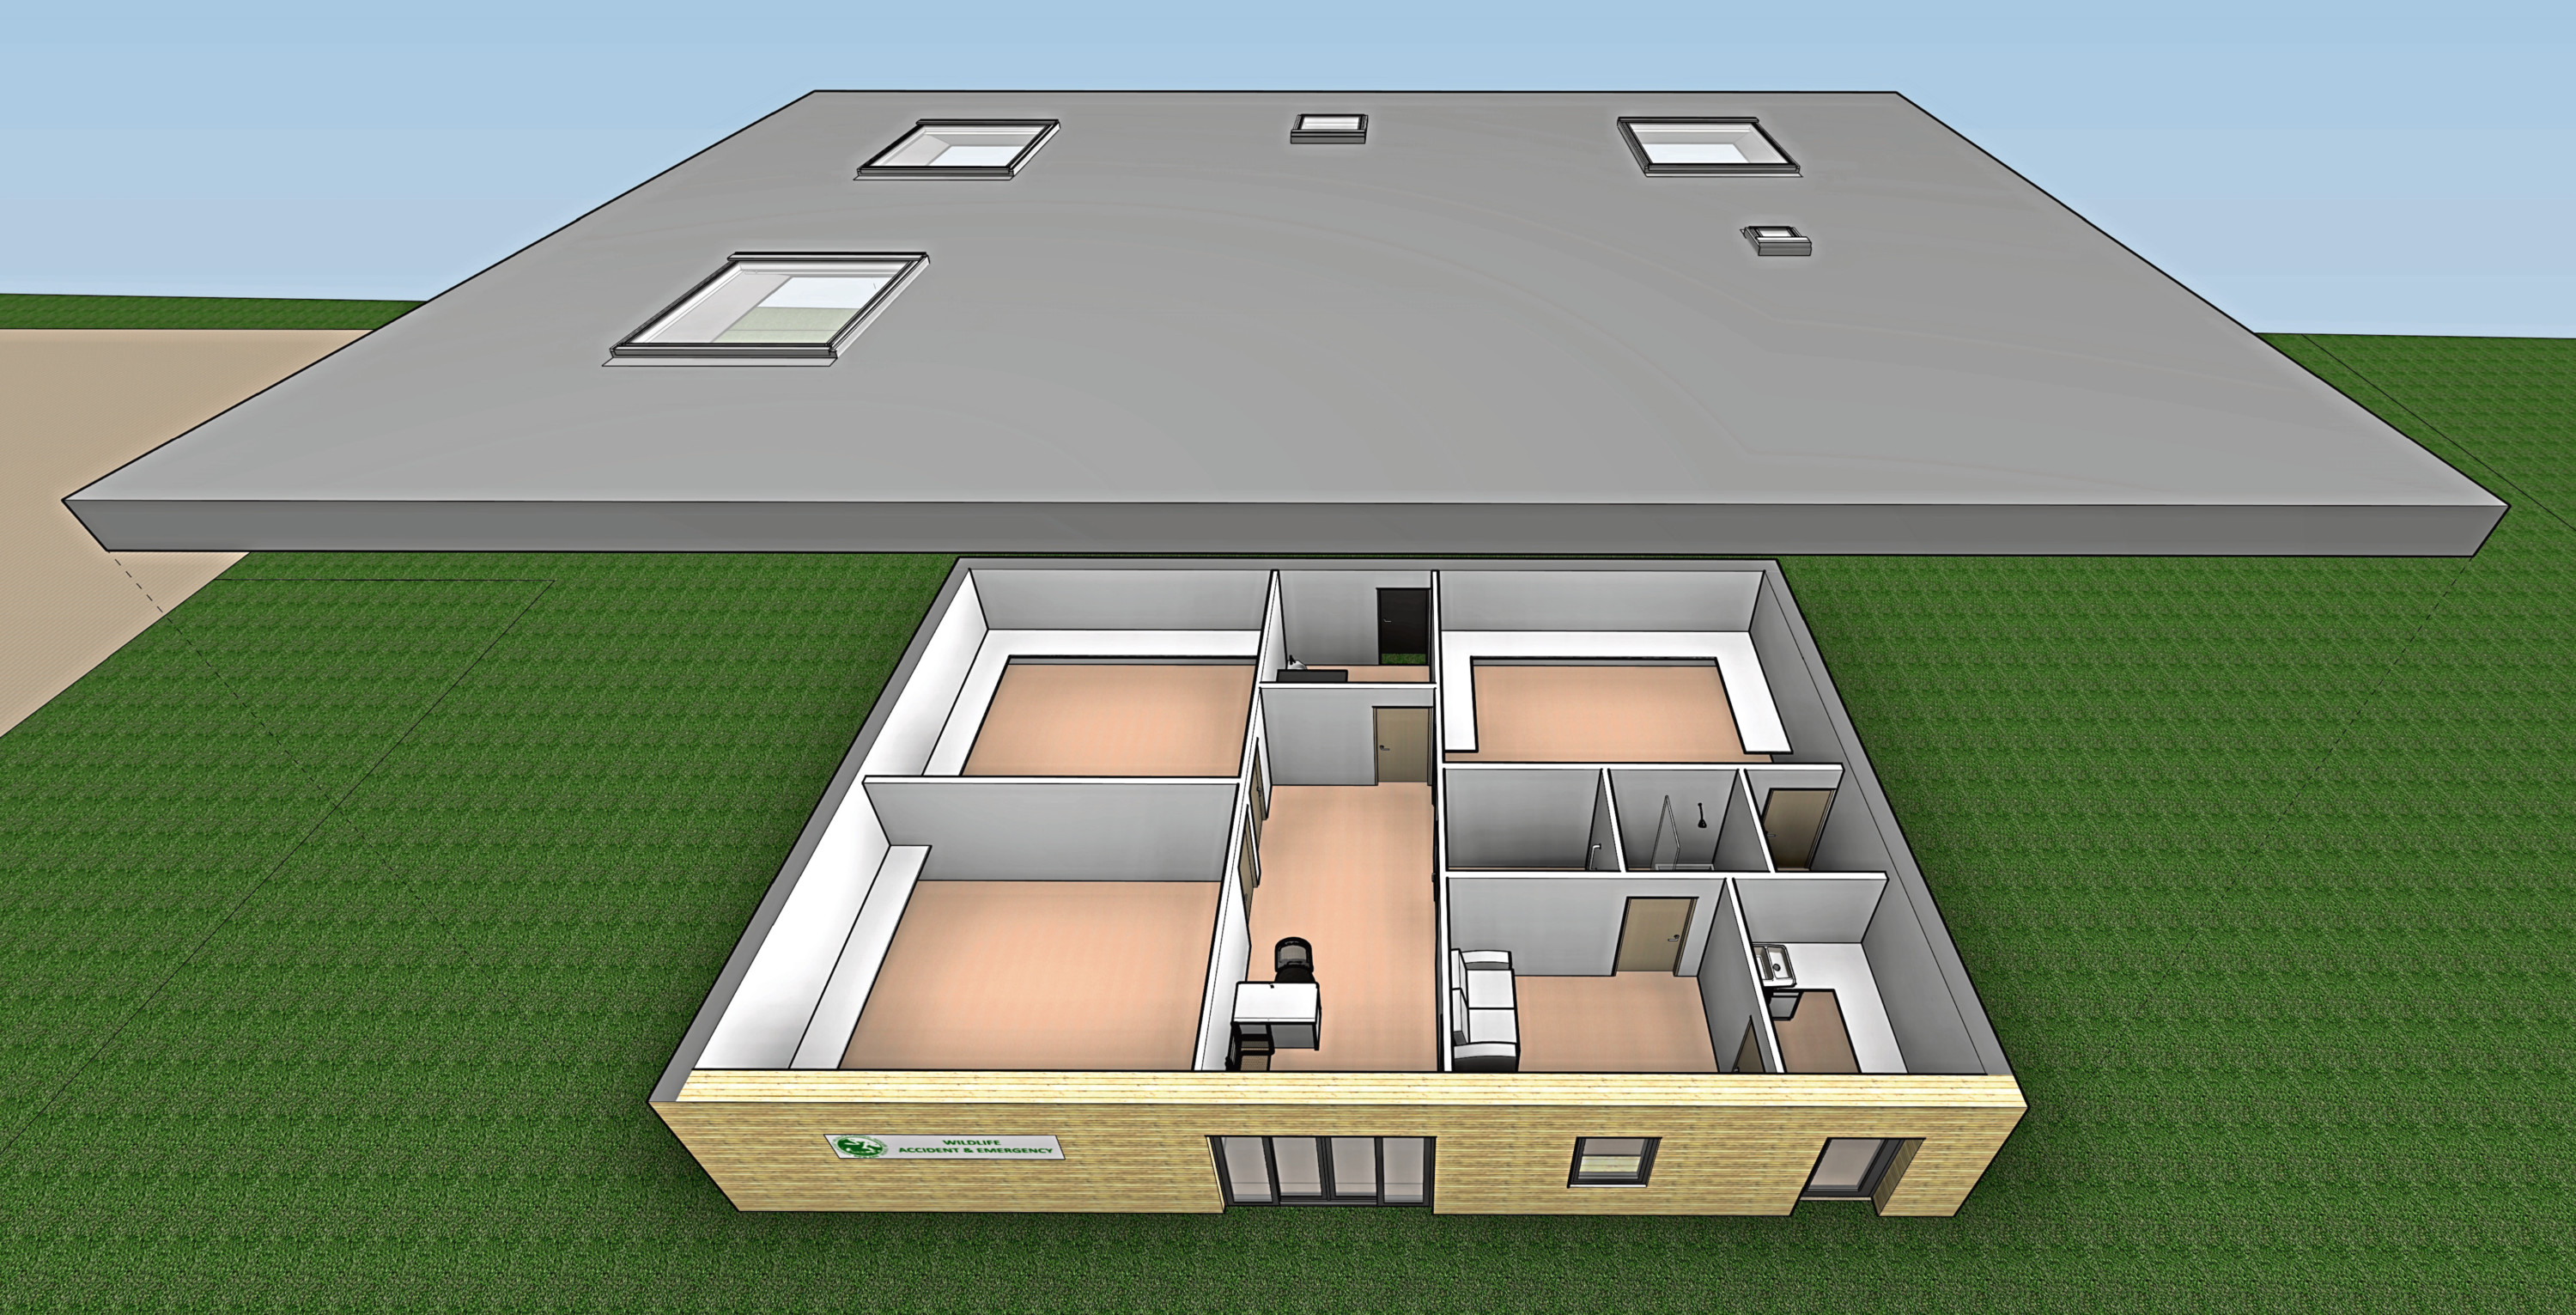 An artist's impression of the New Arc's emergency clinic